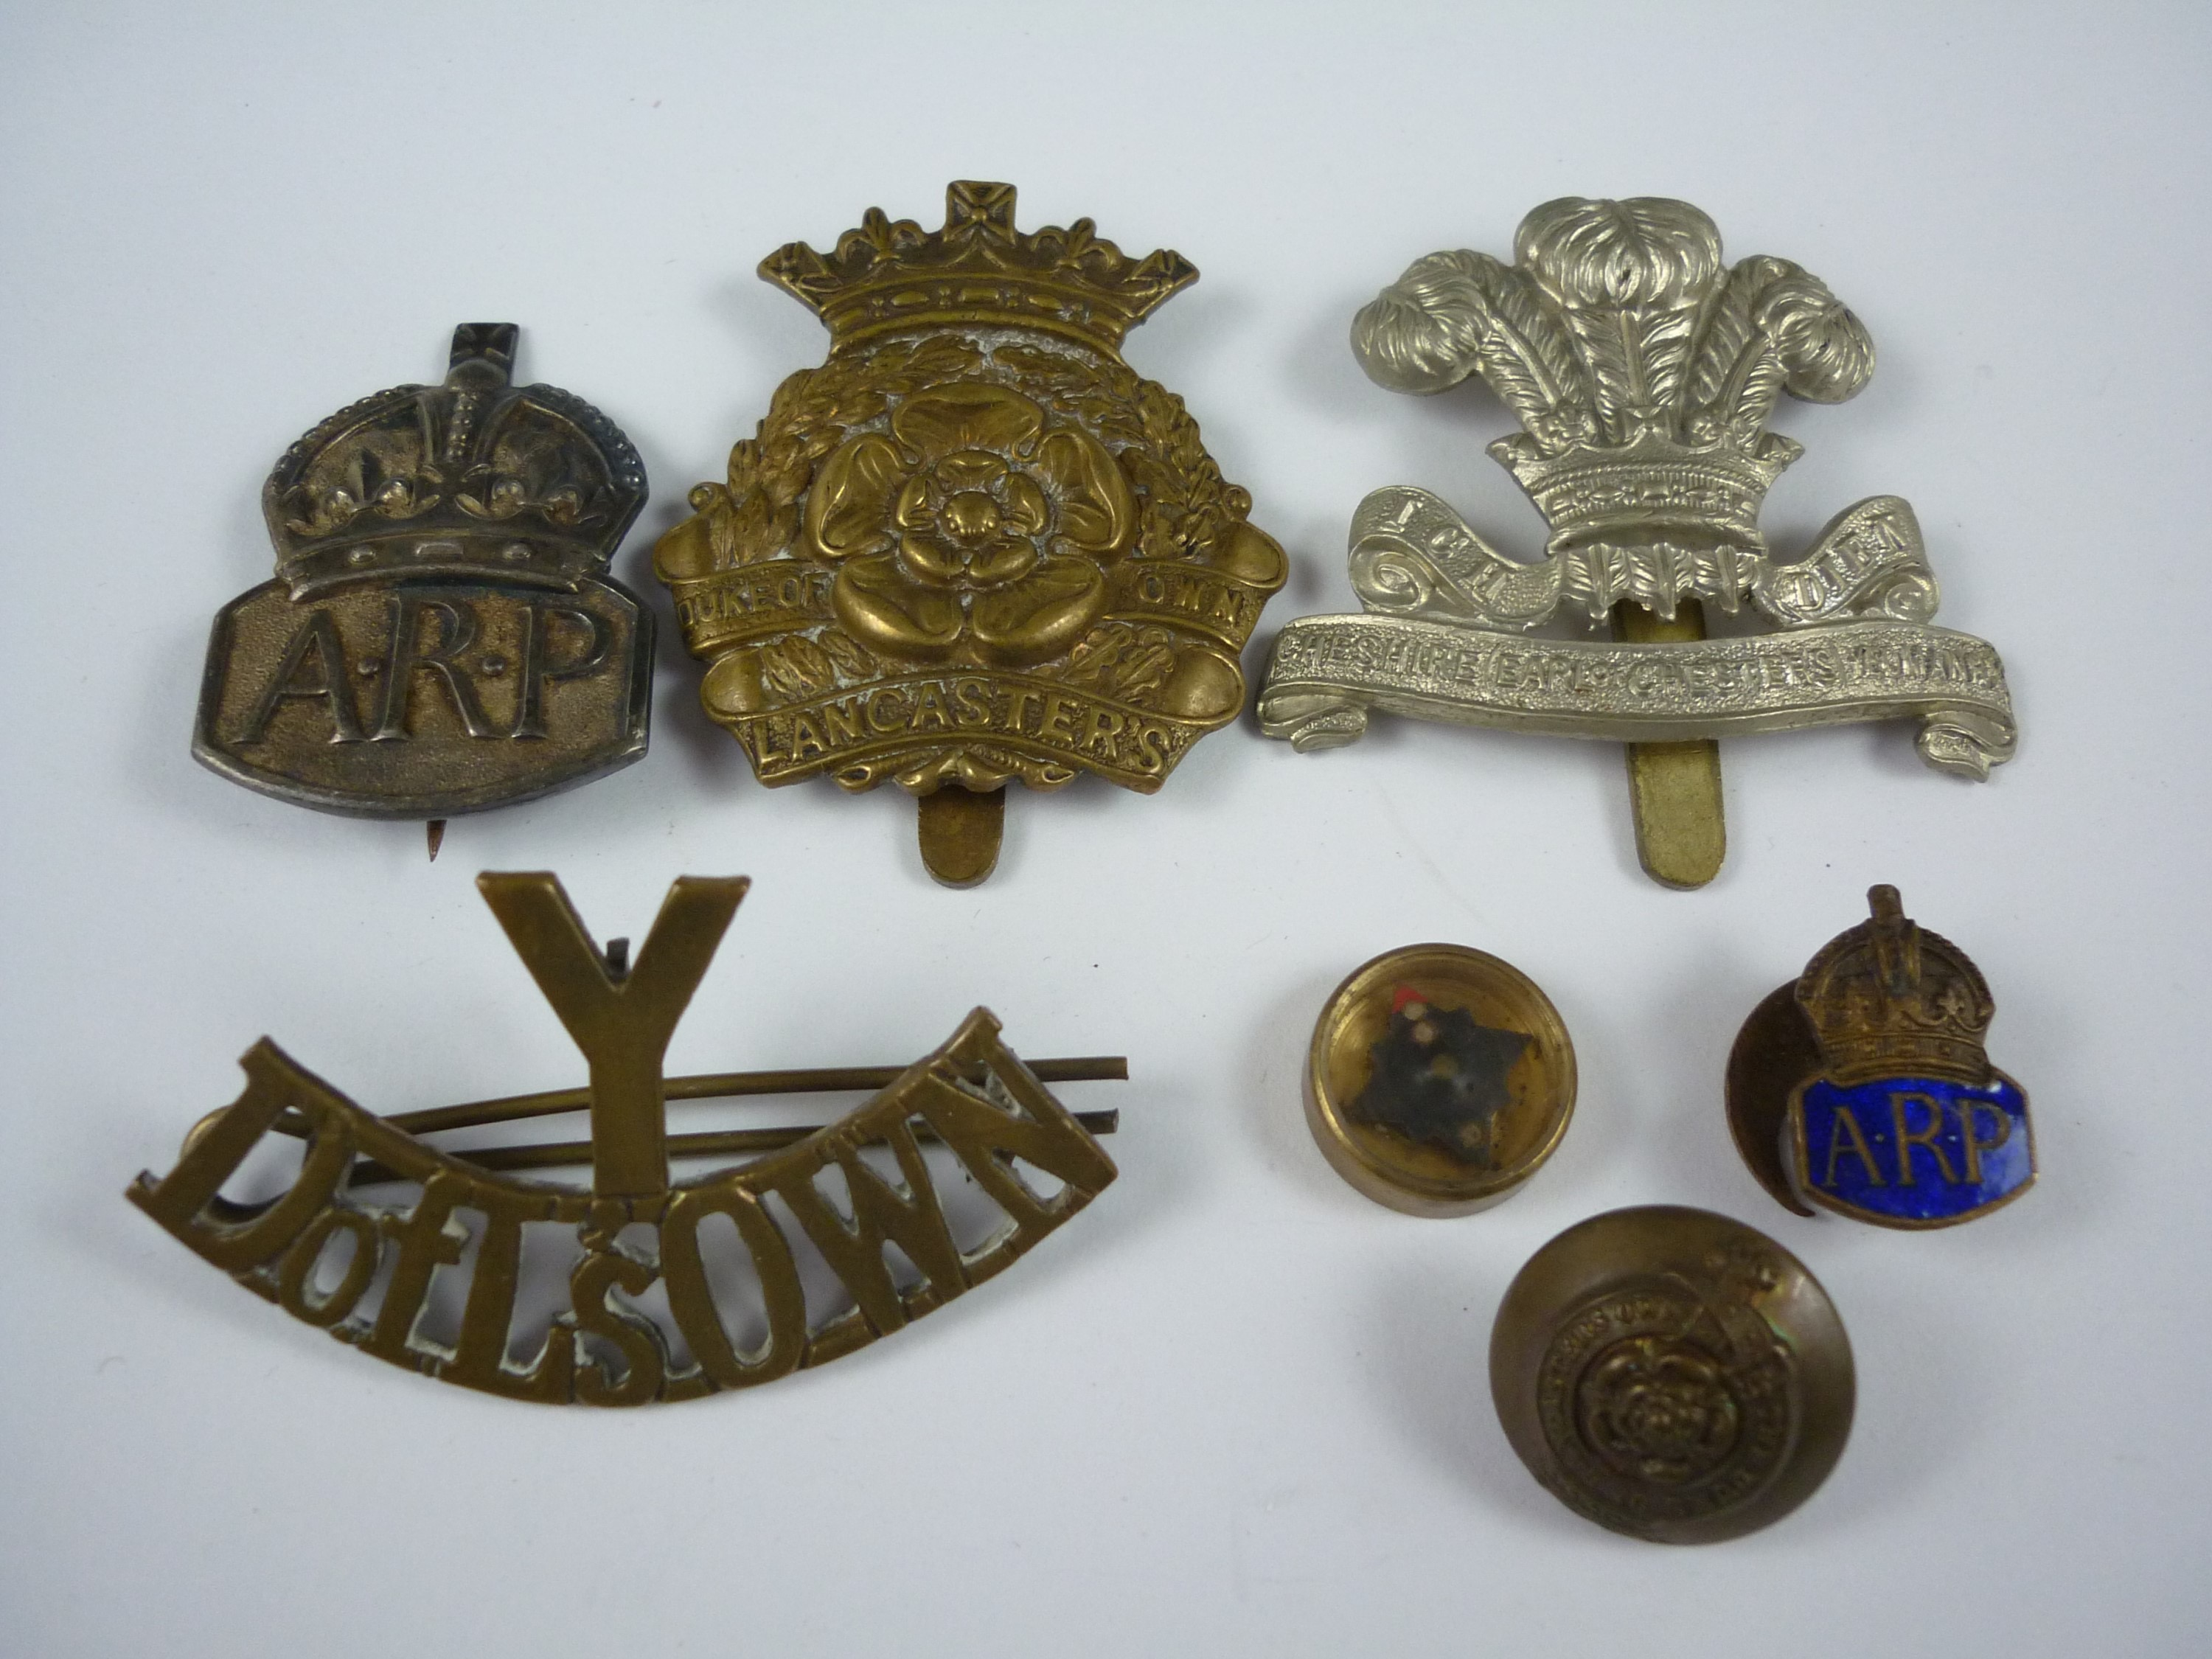 Lot 40 - A small group of British Army insignia and an escape and evasion compass, including a Duke of